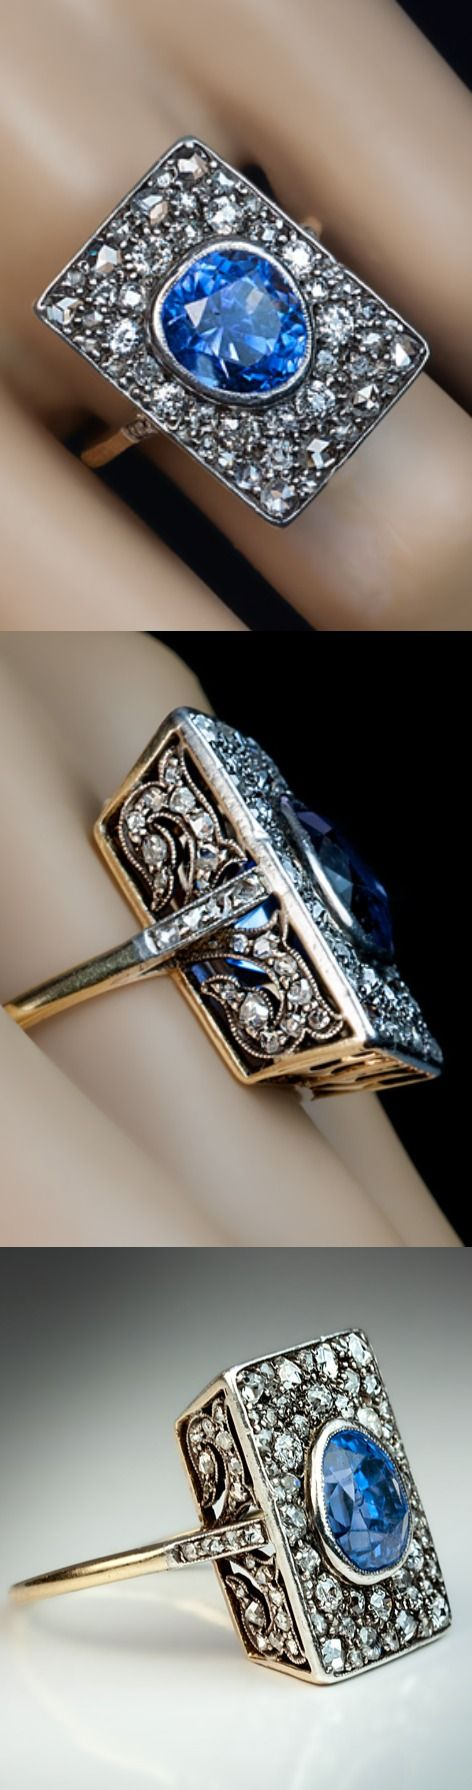 An Unusual Antique Sapphire and Diamond Engagement Ring circa 1900 The rectangular silver topped 18K gold ring is centered with an egg-shaped faceted natural unheated sapphire of an excellent even cornflower blue color. The sapphire is surrounded by old European, cushion and rose cut diamonds that are densely set in silver over gold. The renaissance style, floral openwork under gallery and shoulders of the ring are embellished with old rose cut diamonds.